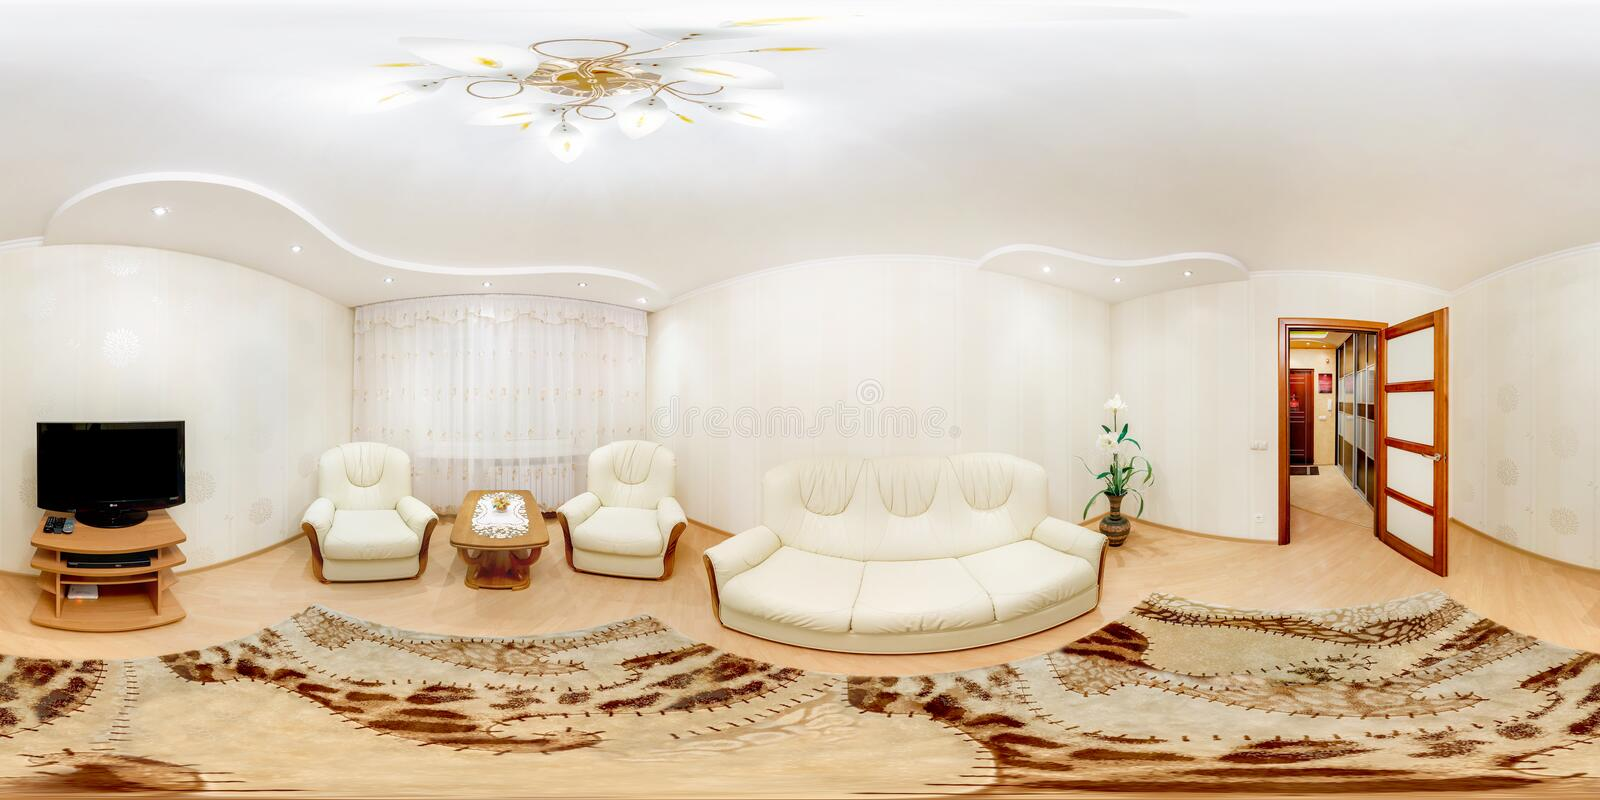 GRODNO, BELARUS - MARCH 20, 2013: Full spherical 360 degrees seamless panorama in equirectangular equidistant projection, panorama. In interior of guestroom stock images